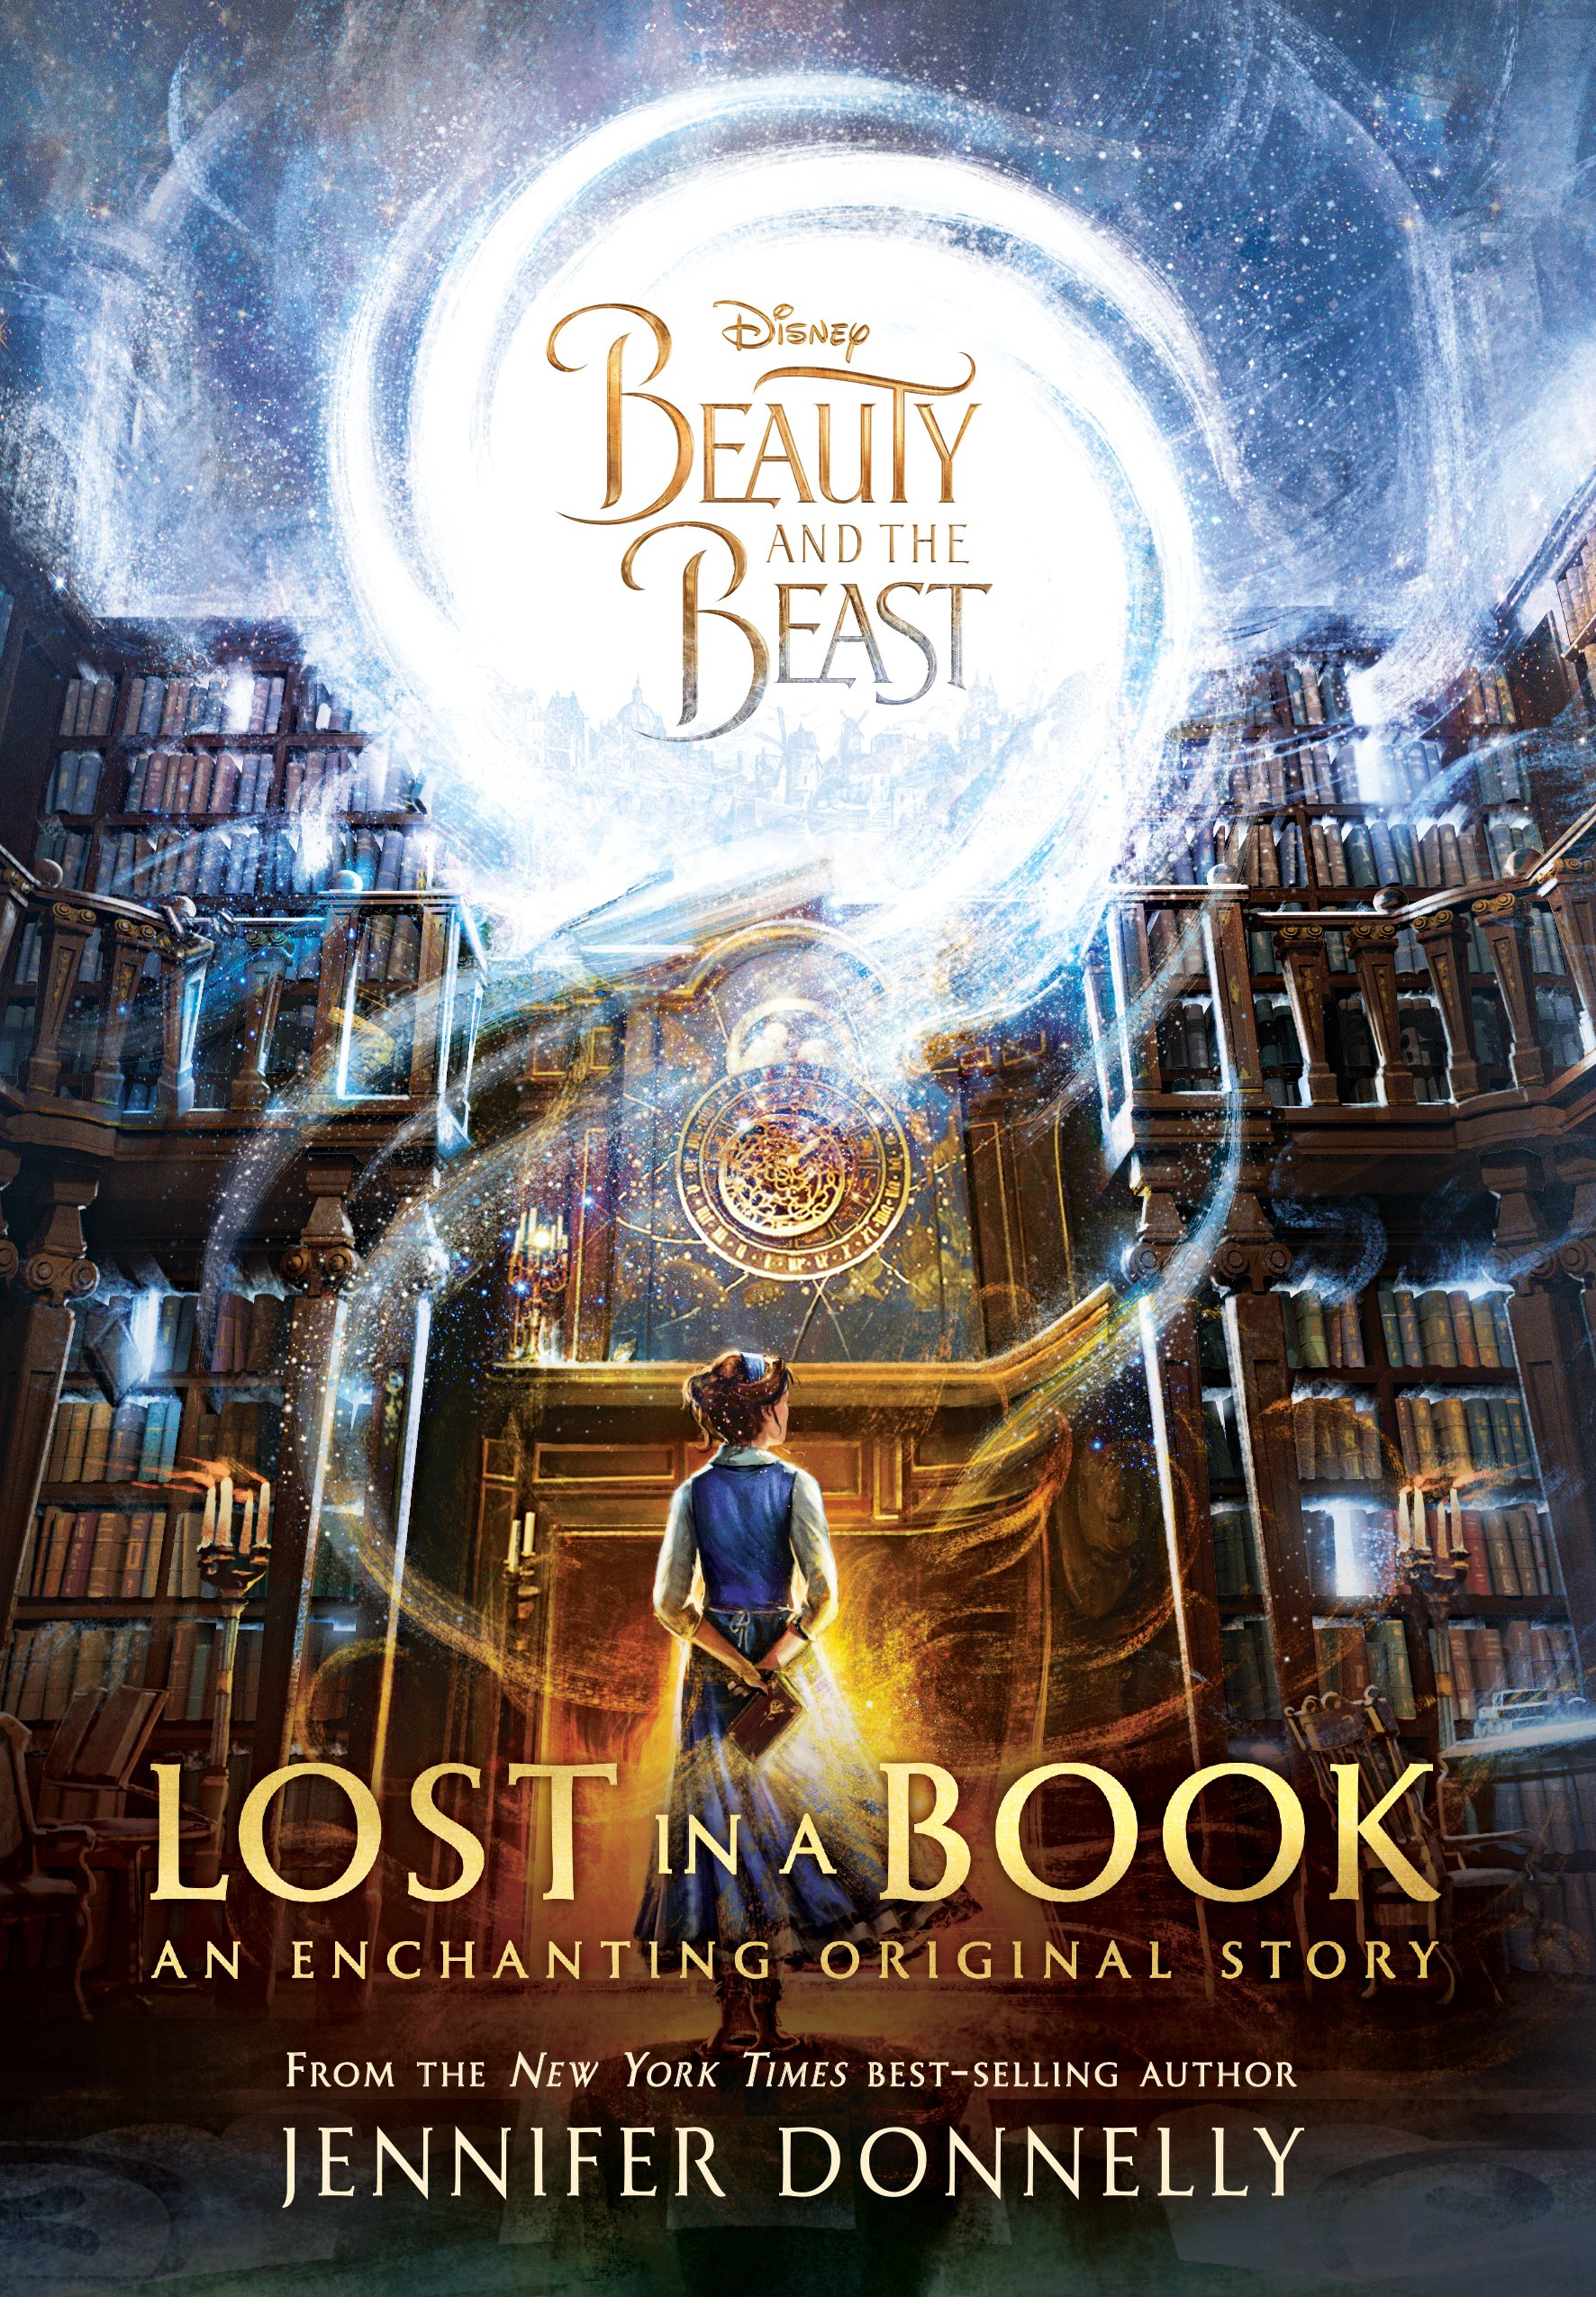 amazon beauty and the beast lost in a book jennifer donnelly